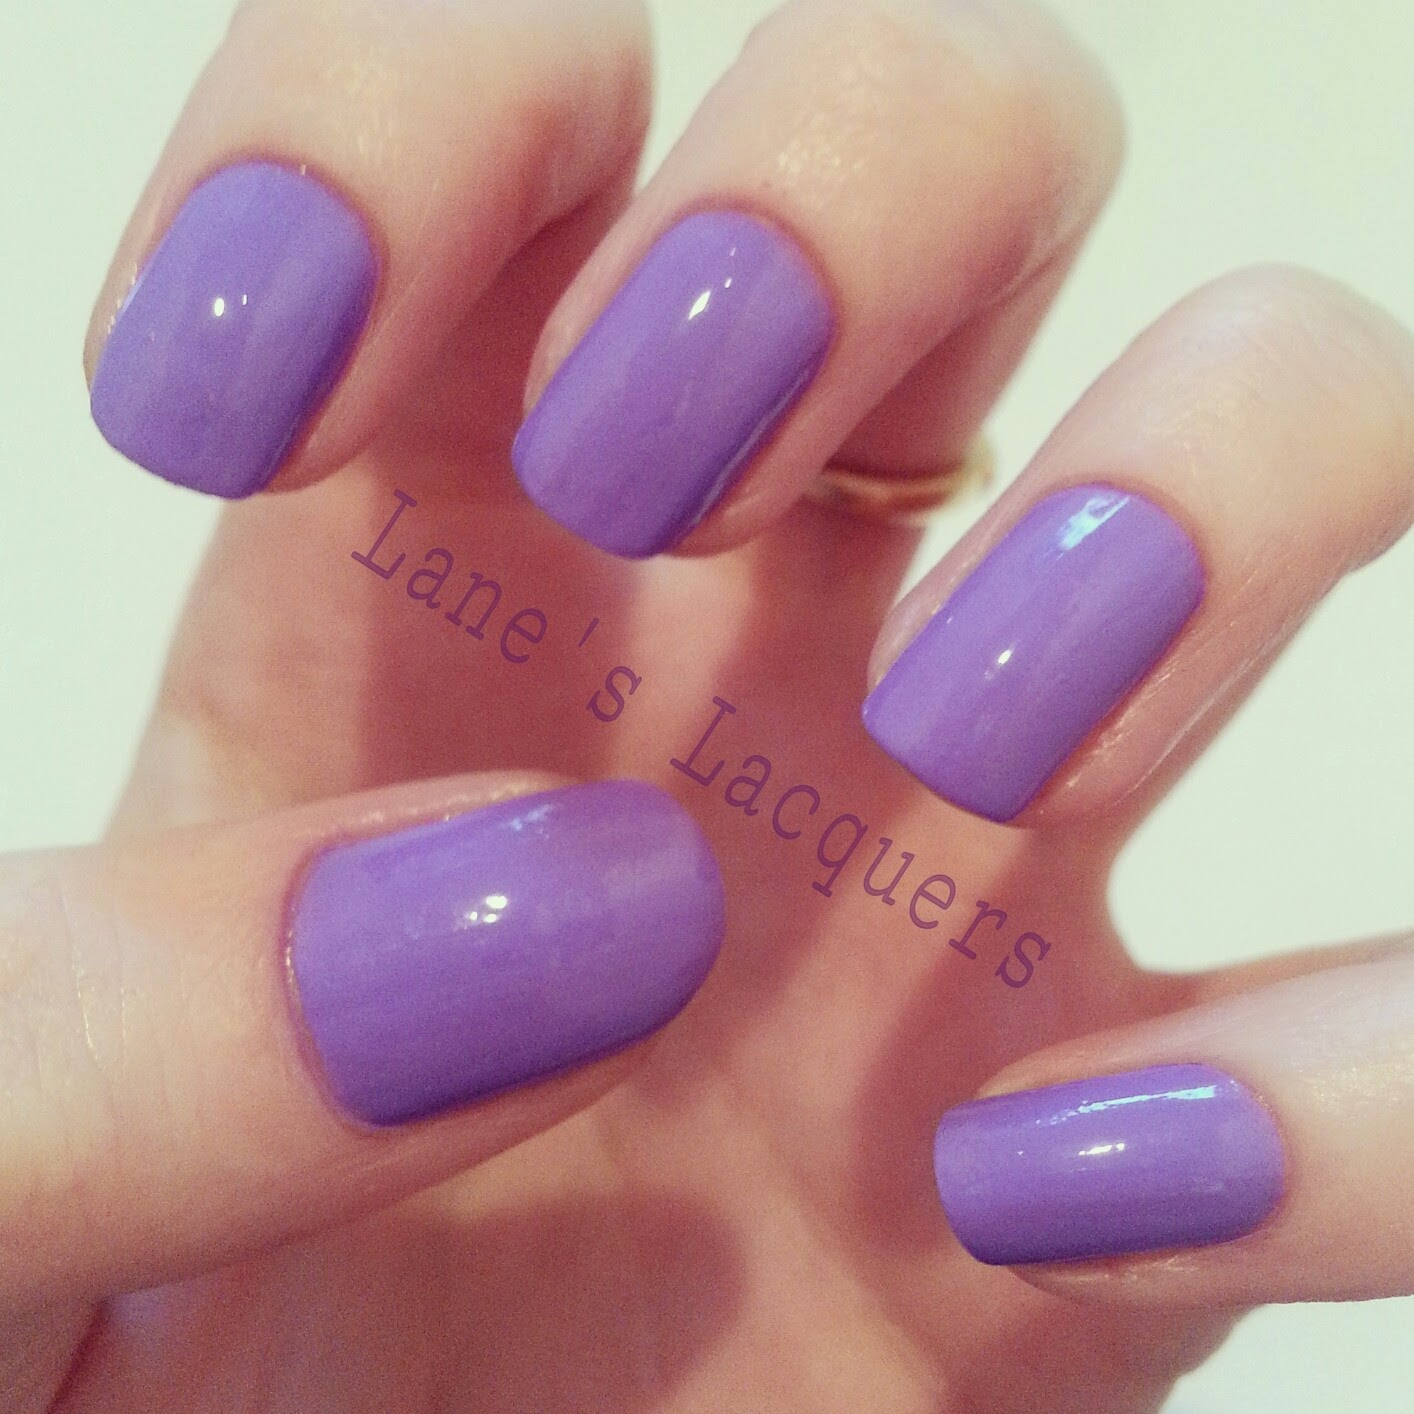 models-own-summer-hypergels-purple-glare-swatch-manicure